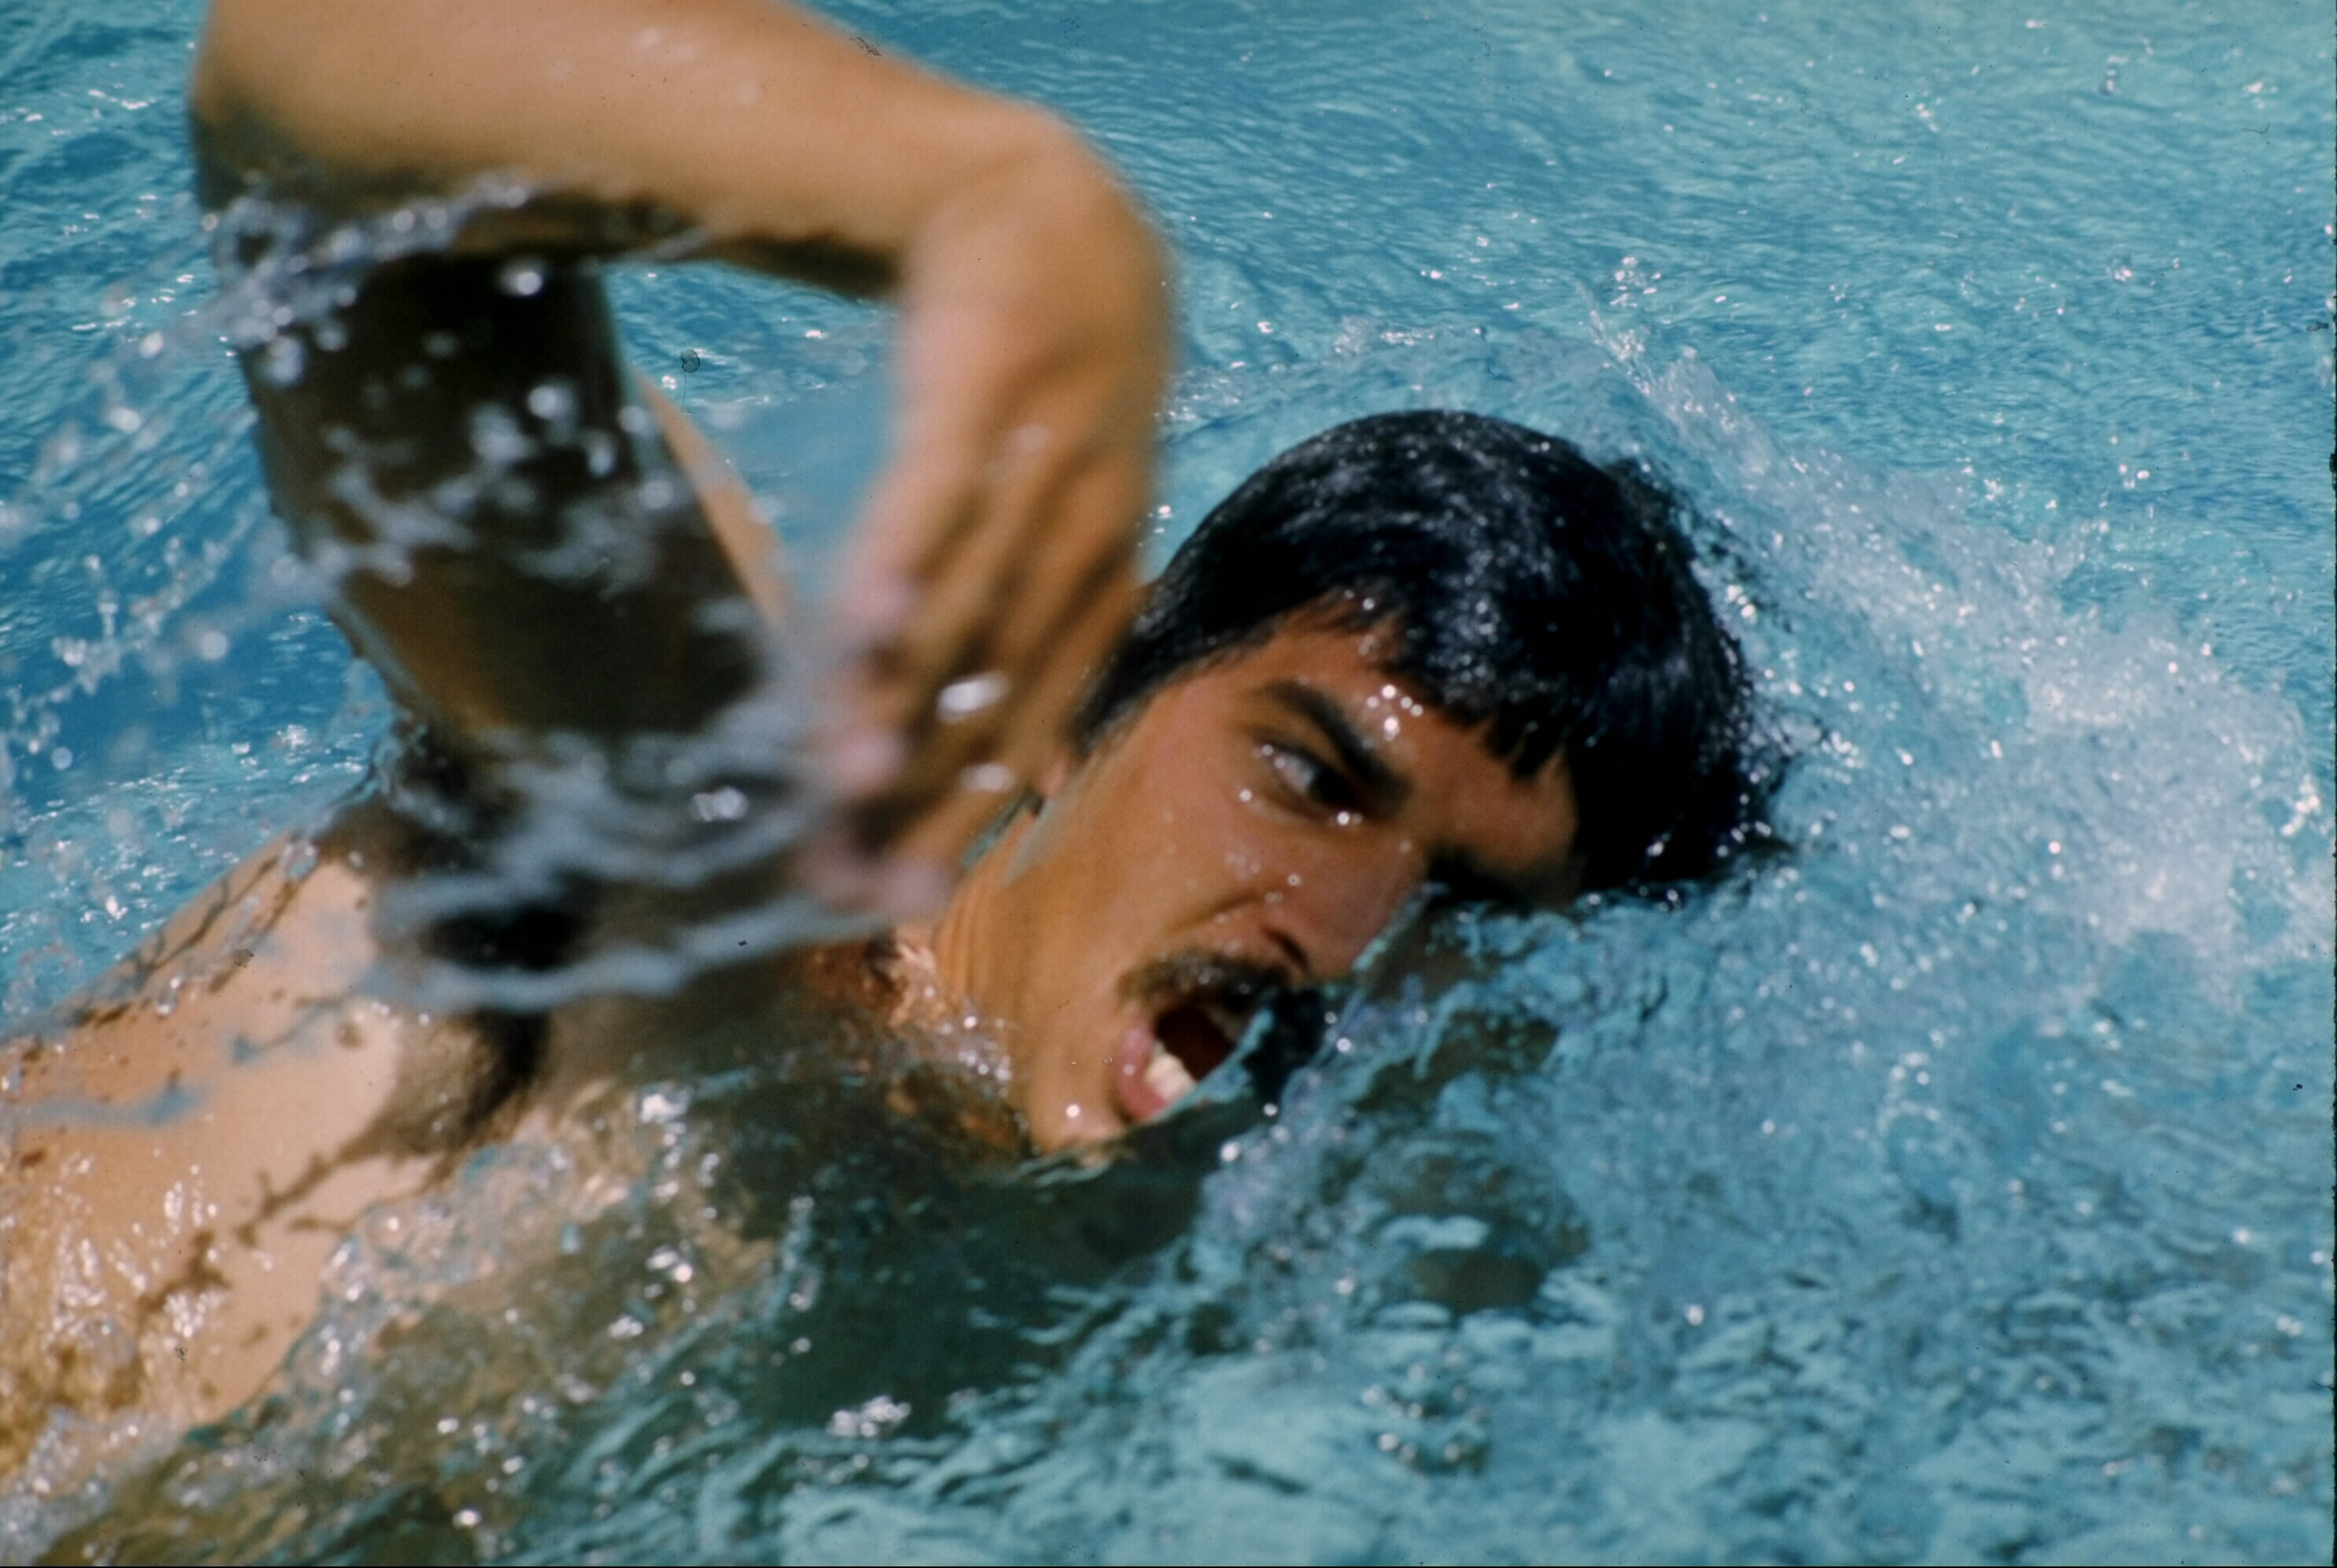 1972:  Mark Spitz of the USA in action at the 1972 Olympics Games in Munich, Germany. Spitz achieved medal winning fame at these Munich Games where he won seven golds, the highest any Olympic Competitor has won for any sport at single Games.  He took both